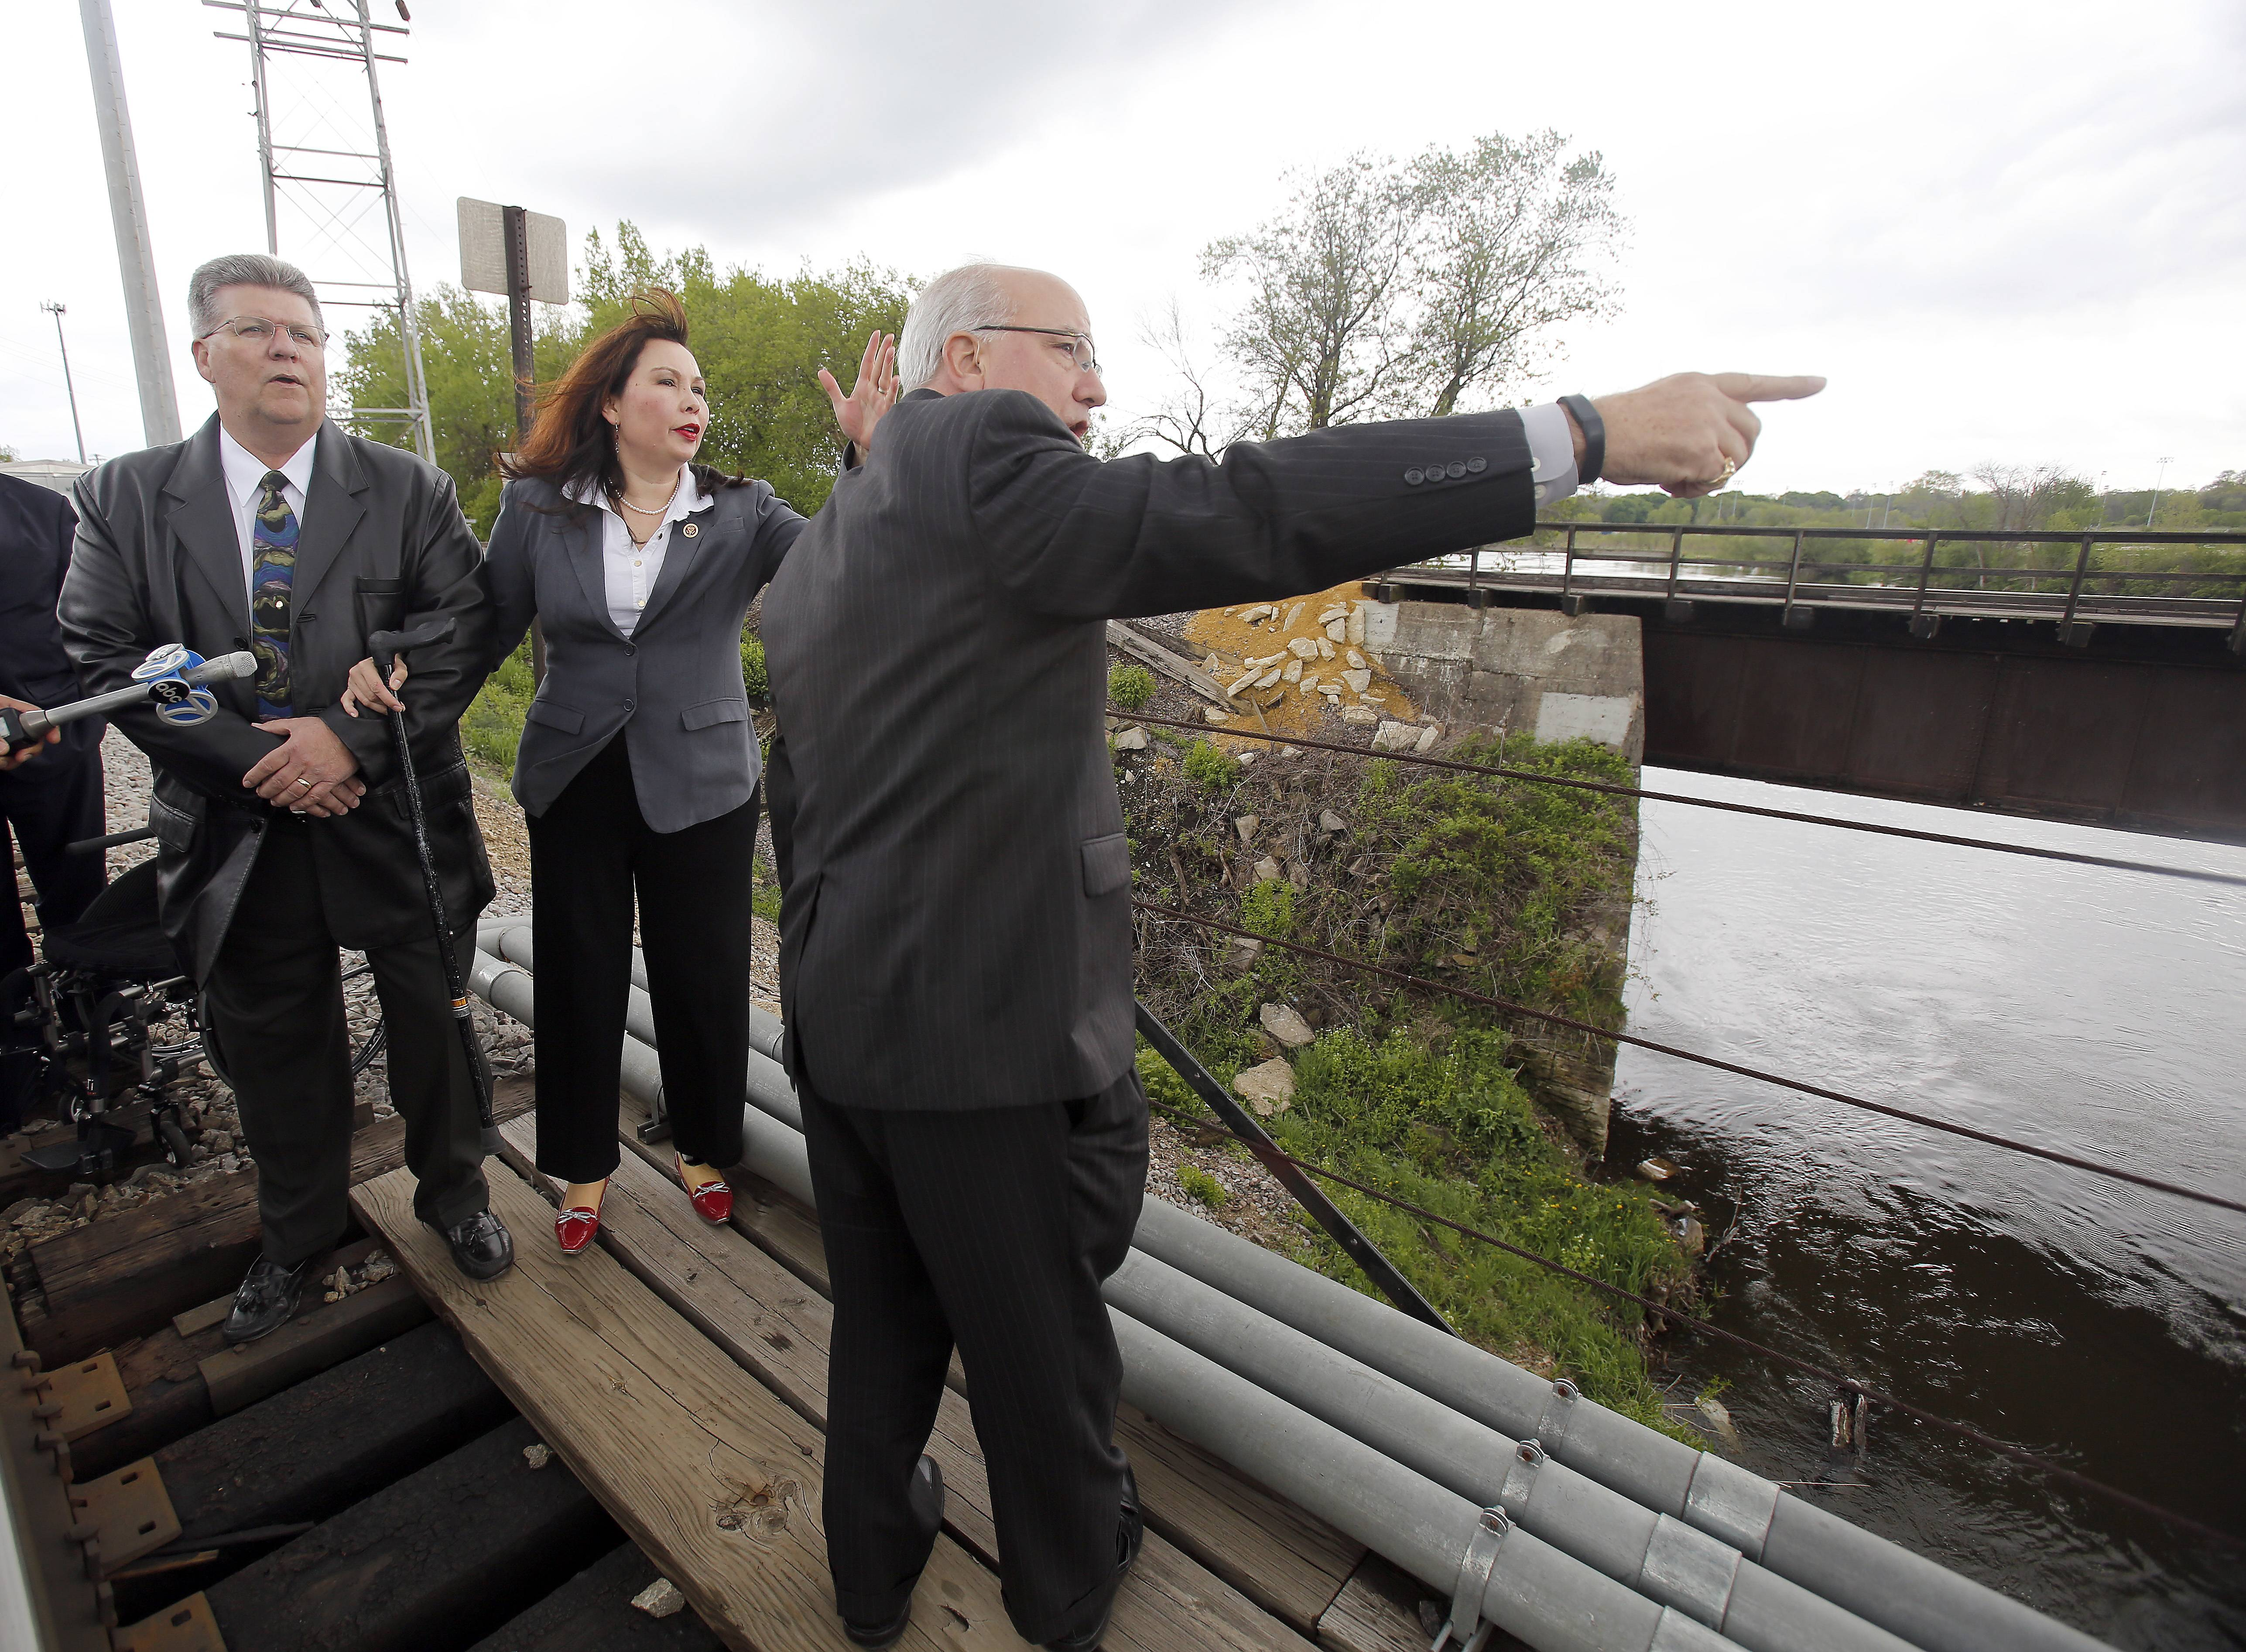 Bill Dorris, board chairman for the National Railroad Construction and Maintenance Association and U.S. Rep. Tammy Duckworth listen as Metra Executive Director/CEO Don Orseno makes a point Thursday near a single-track bridge in Elgin.